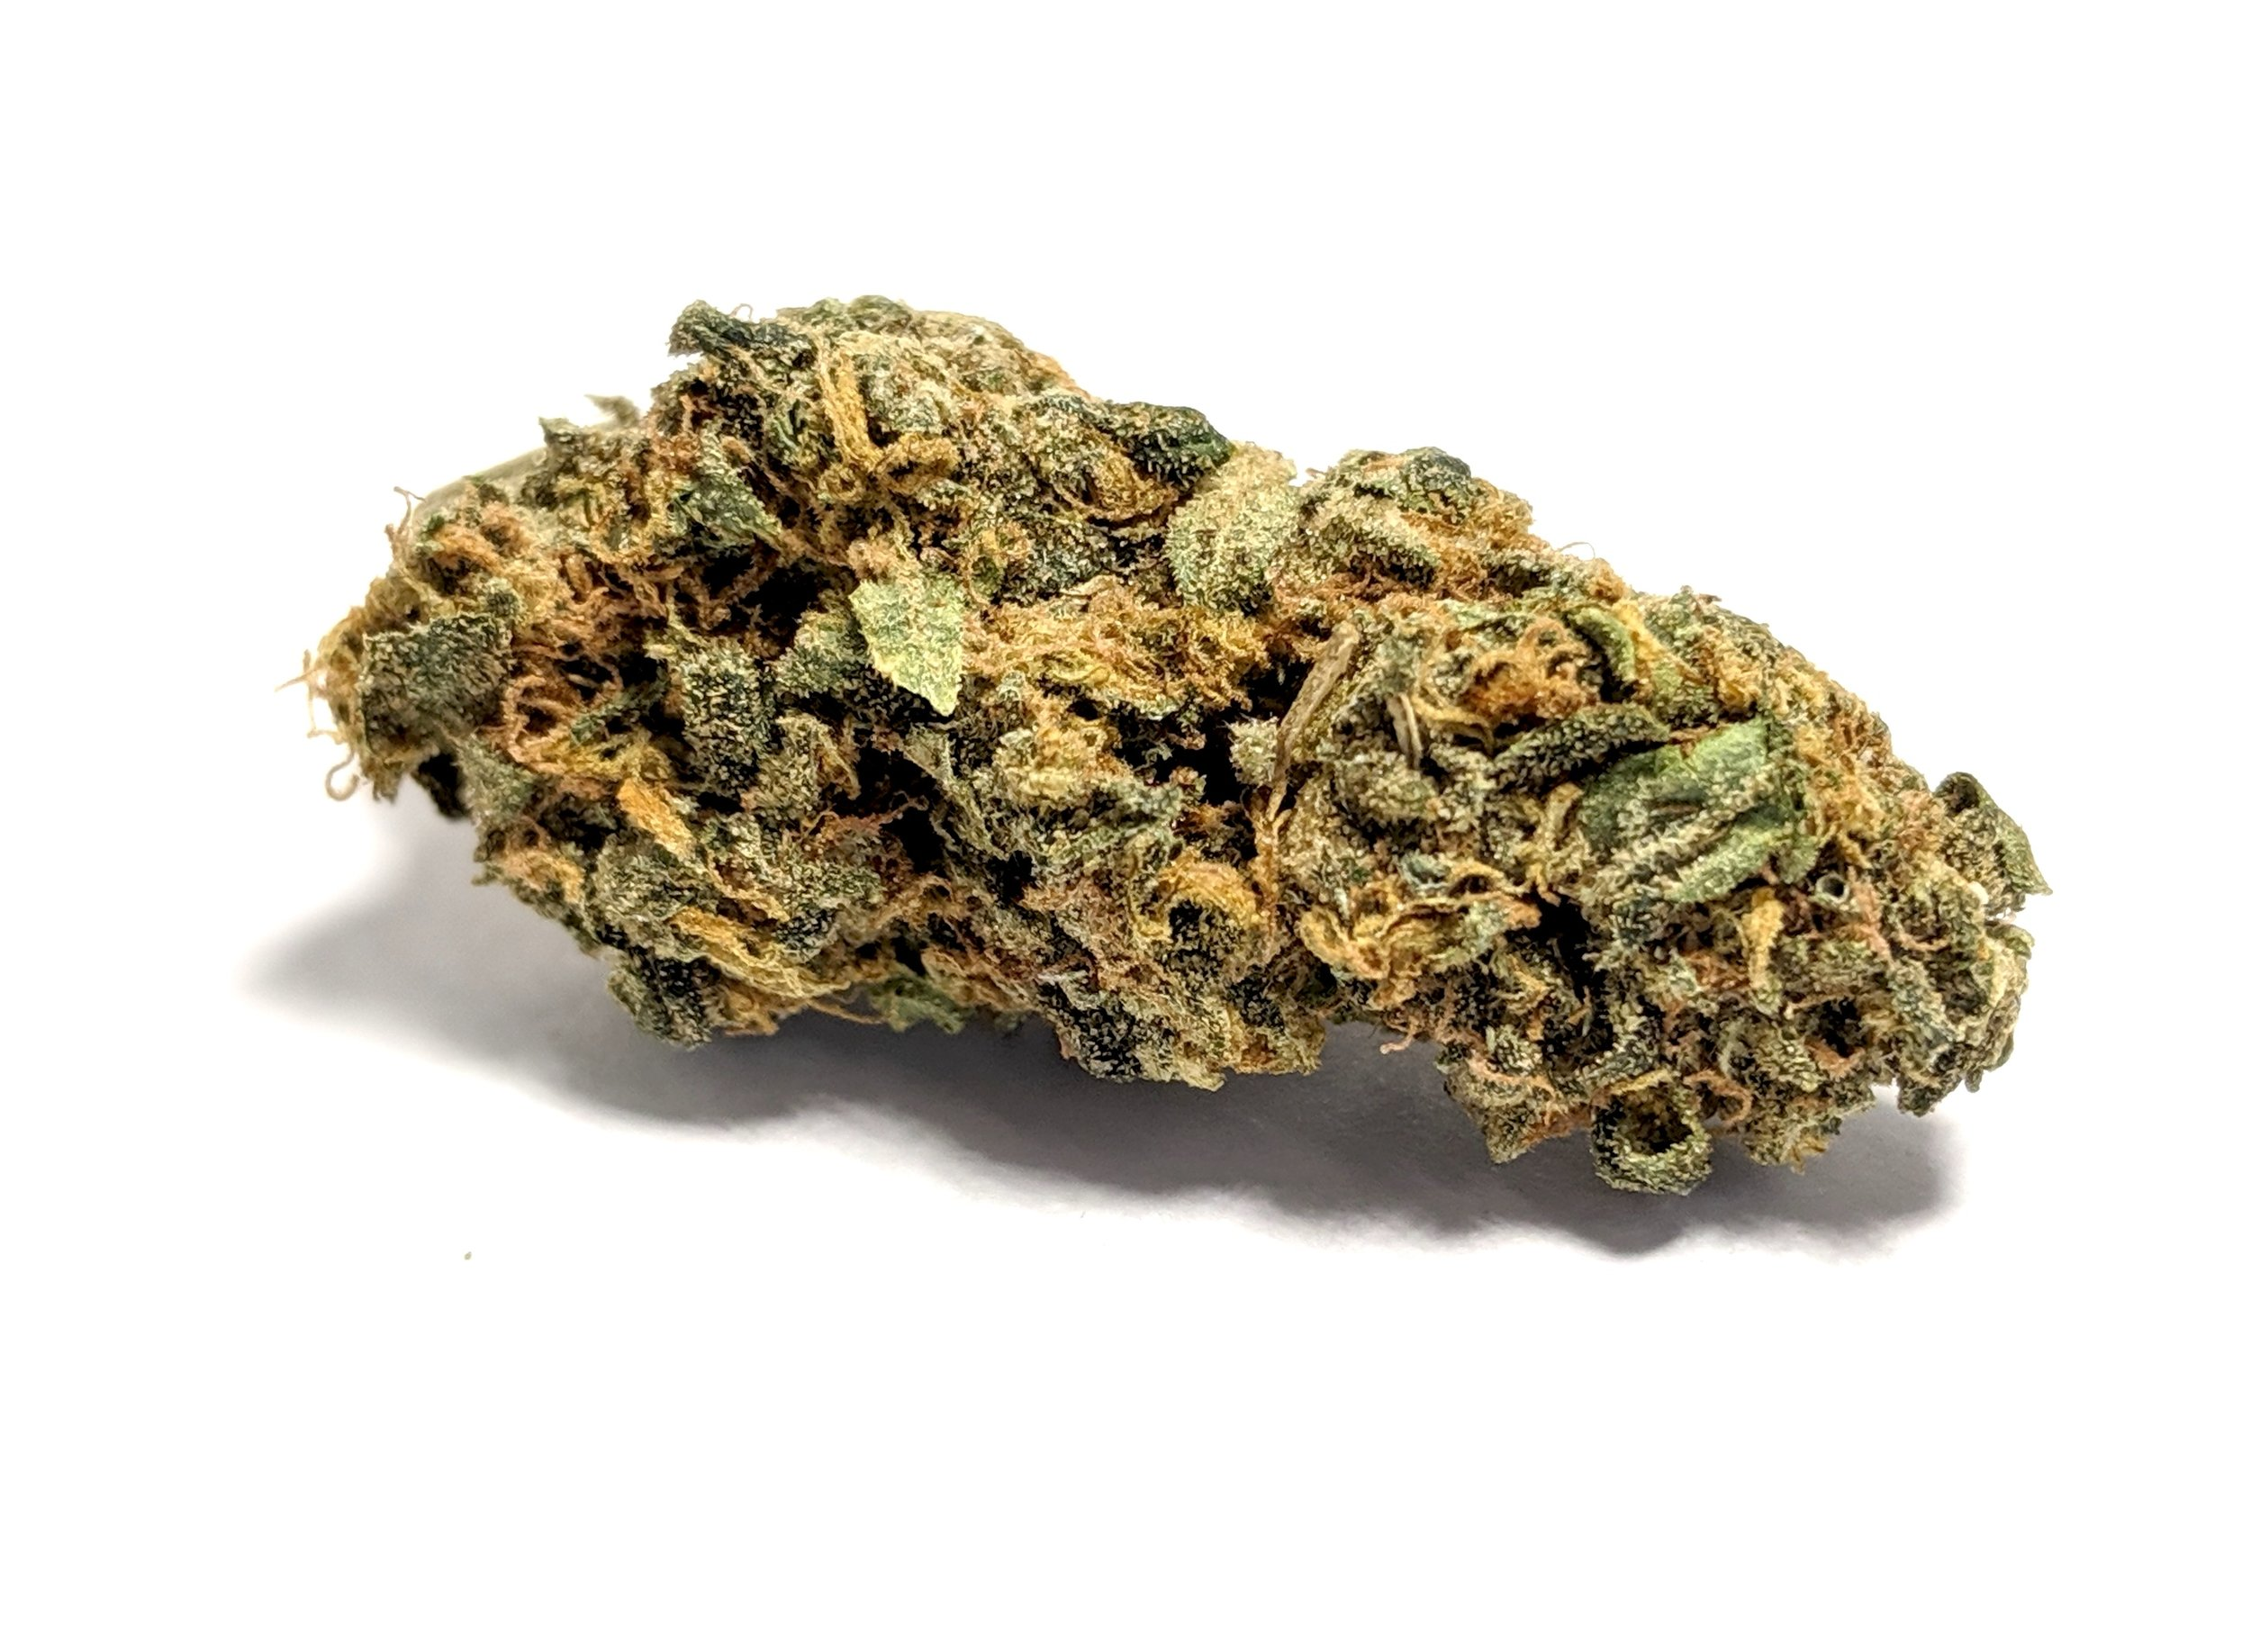 Ice Cream- Hybrid    1/4- $45 1/2-$75 OZ-$140   The high usually starts with the Sativa effects, generating uplifting moods with heady cerebral sensations. Users report feeling more creative. Adults diagnosed with ADD/ ADHD report feeling more focused. The Indica effects follow, often producing a numbing laziness, sedation and increased appetite. Negative effects include the usual dry eyes and mouth. Some anxiety, dizziness, and paranoia may also occur (especially with higher doses). Patients choose Ice Cream primarily for the treatment of stress. The strain allows patients with anxiety and depression-related disorders to relax. Ice Cream's Indica-based effects are also helpful to those seeking relief from mild aches and pains. Patients dealing with anorexia and other eating disorders may find Ice Cream useful in inducing appetite.